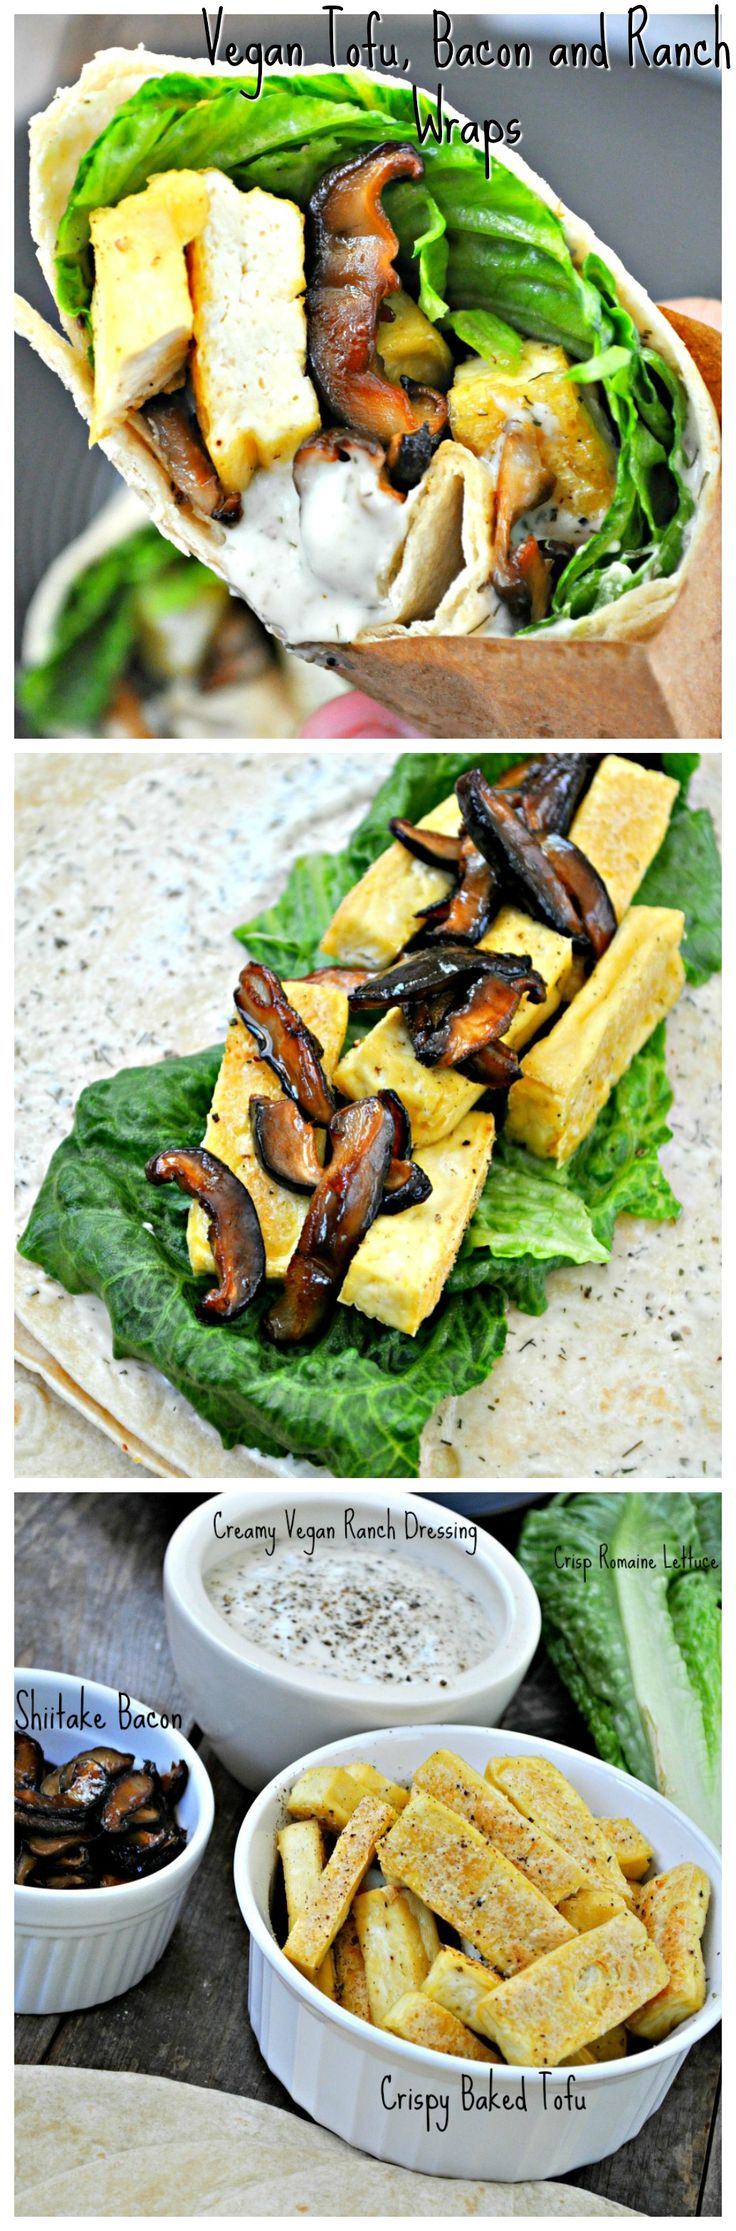 Another cool link is ExoticCarTransportCompany.com  Vegan Tofu, Bacon, Ranch Wraps